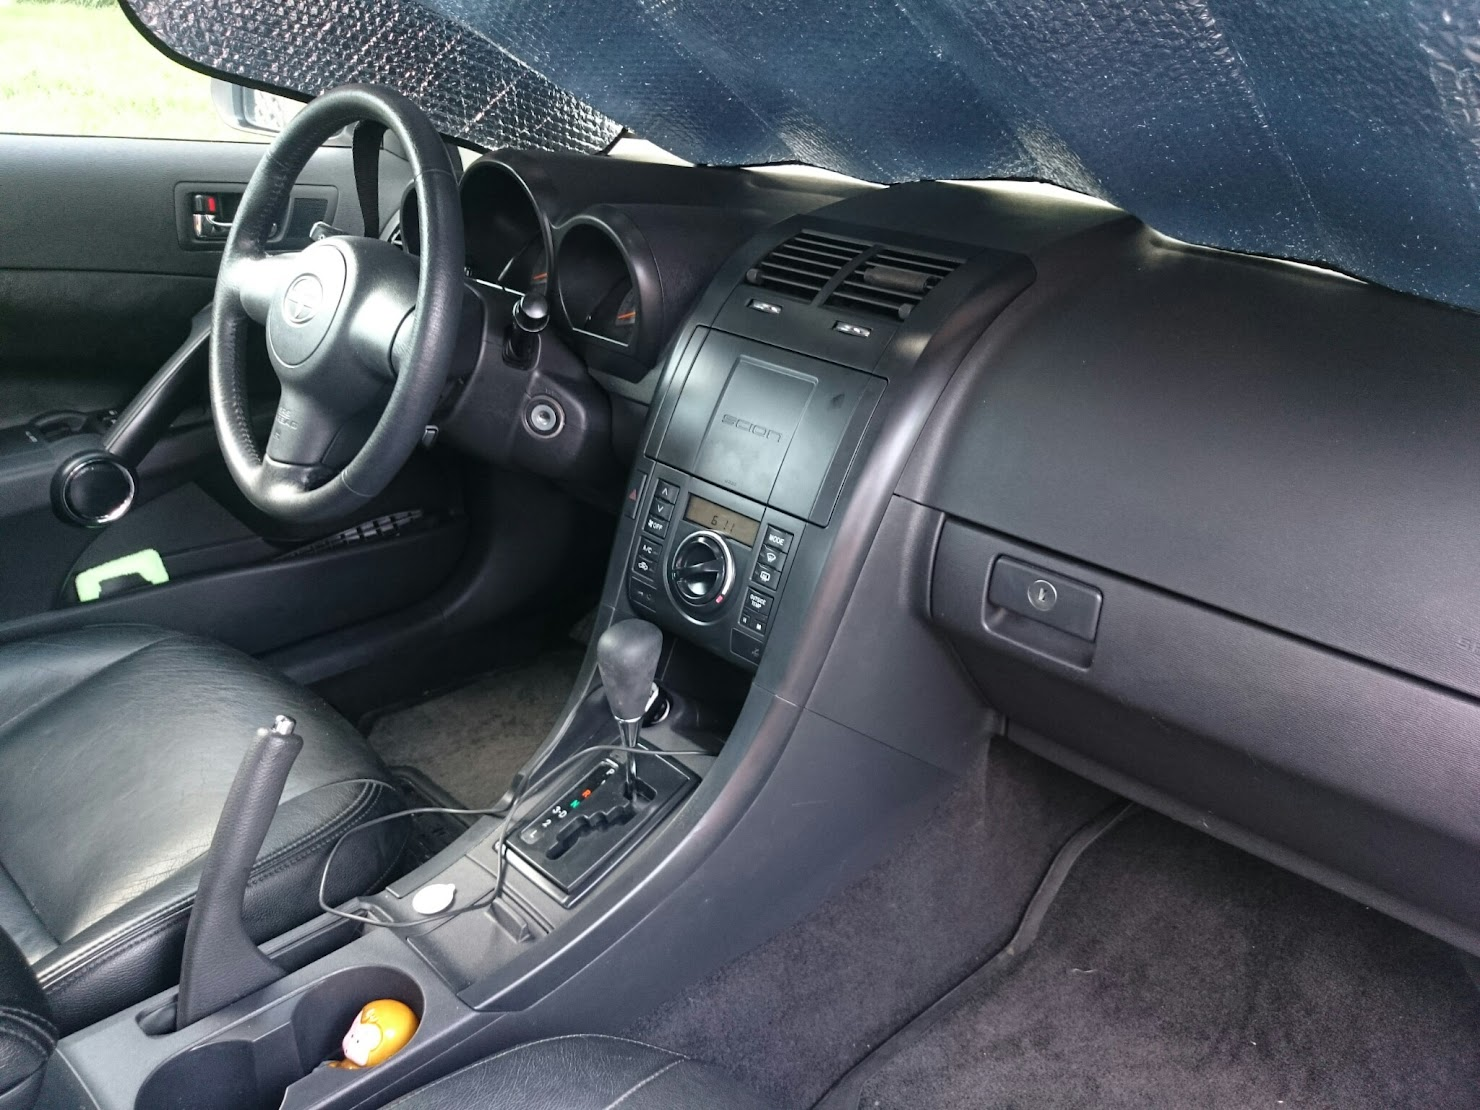 2005 scion tc interior trim painting new stereo custom interior lights pics. Black Bedroom Furniture Sets. Home Design Ideas